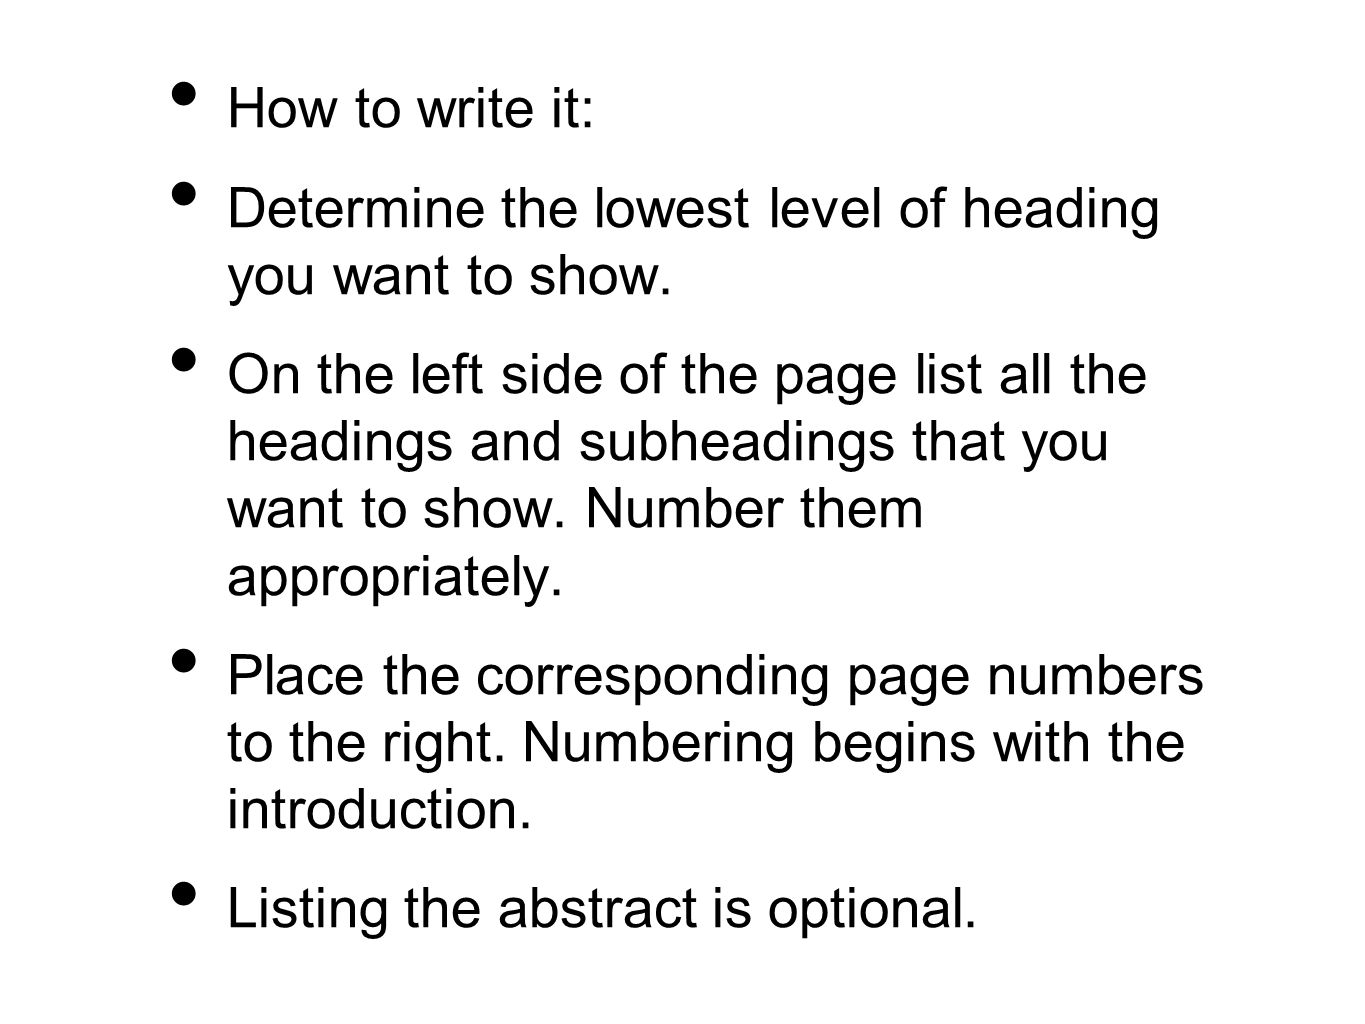 How to write it: Determine the lowest level of heading you want to show.